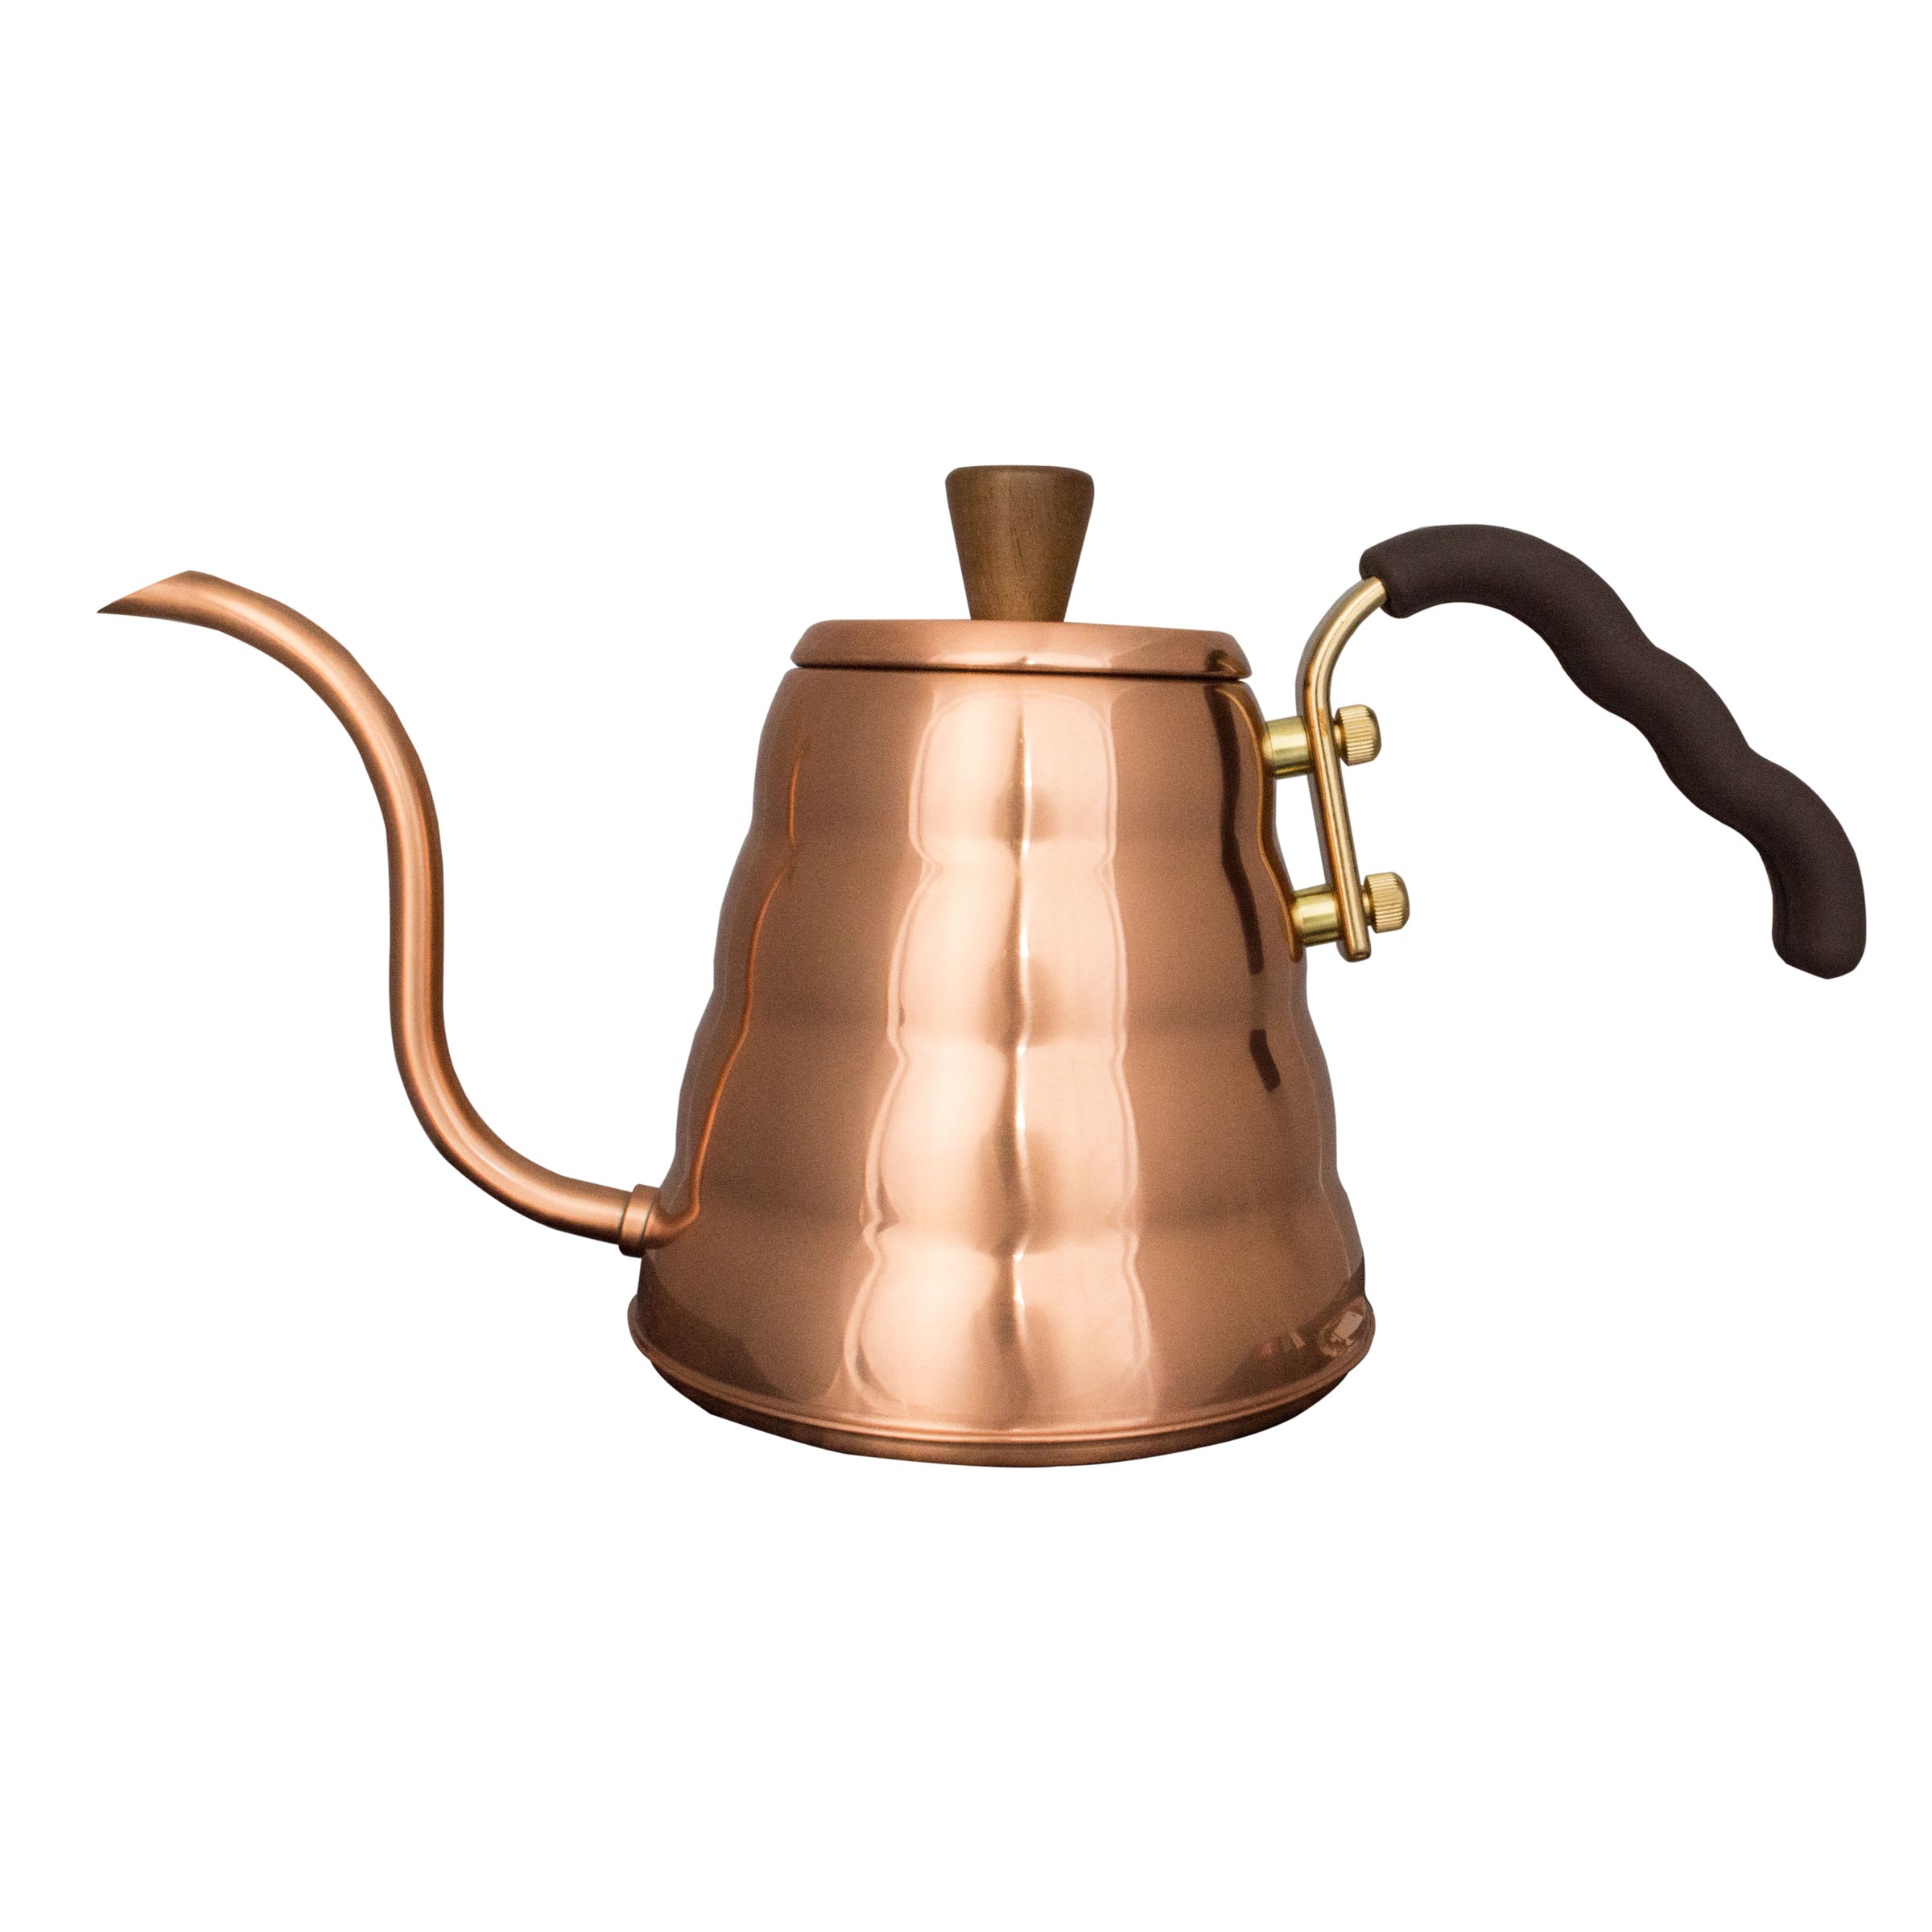 Merchandise - Hario V60 Drip Kettle Buono Copper